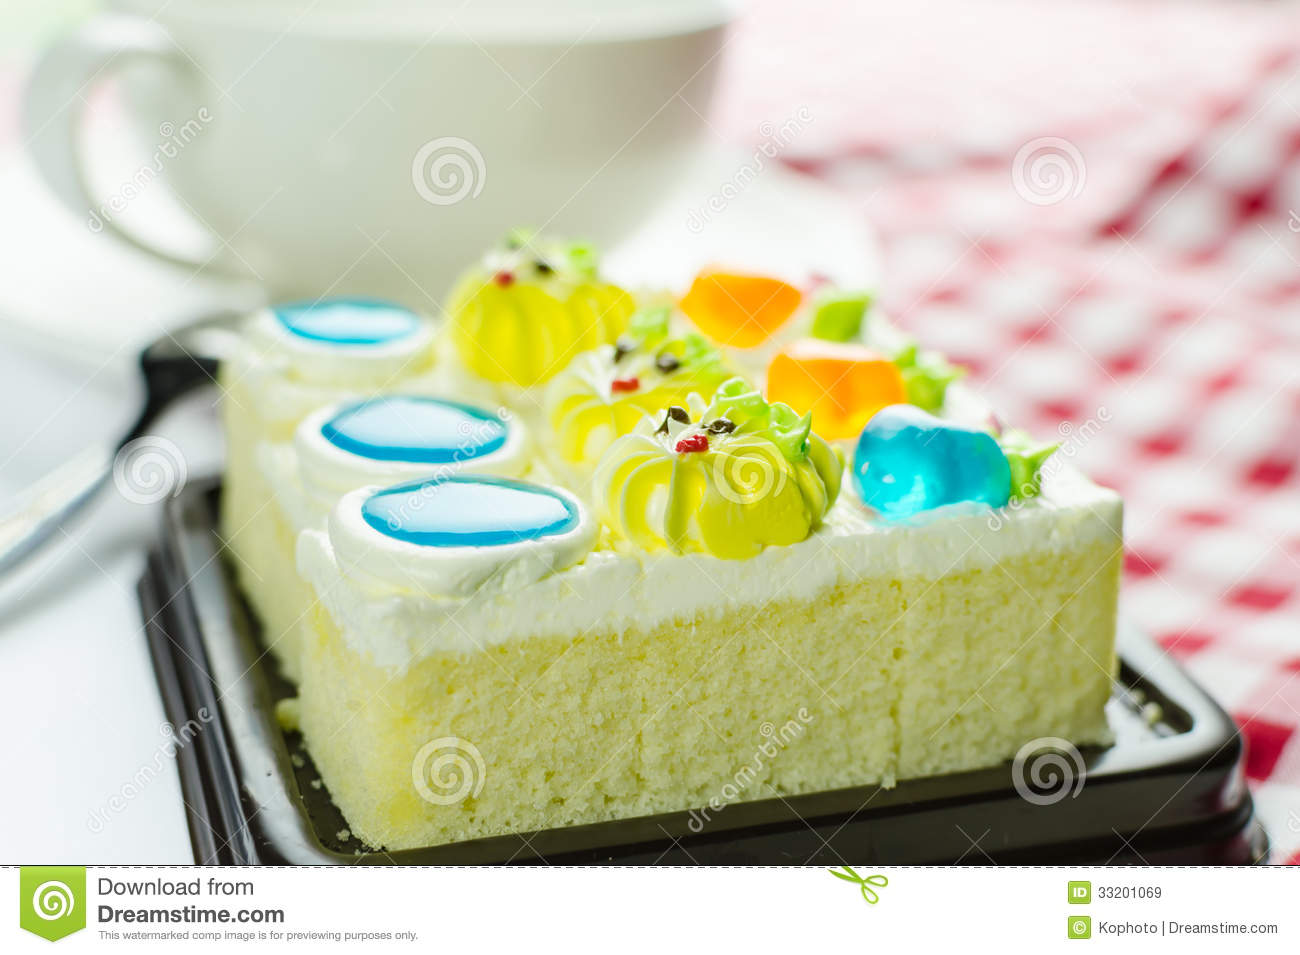 Cake With Cream And Jelly Topping